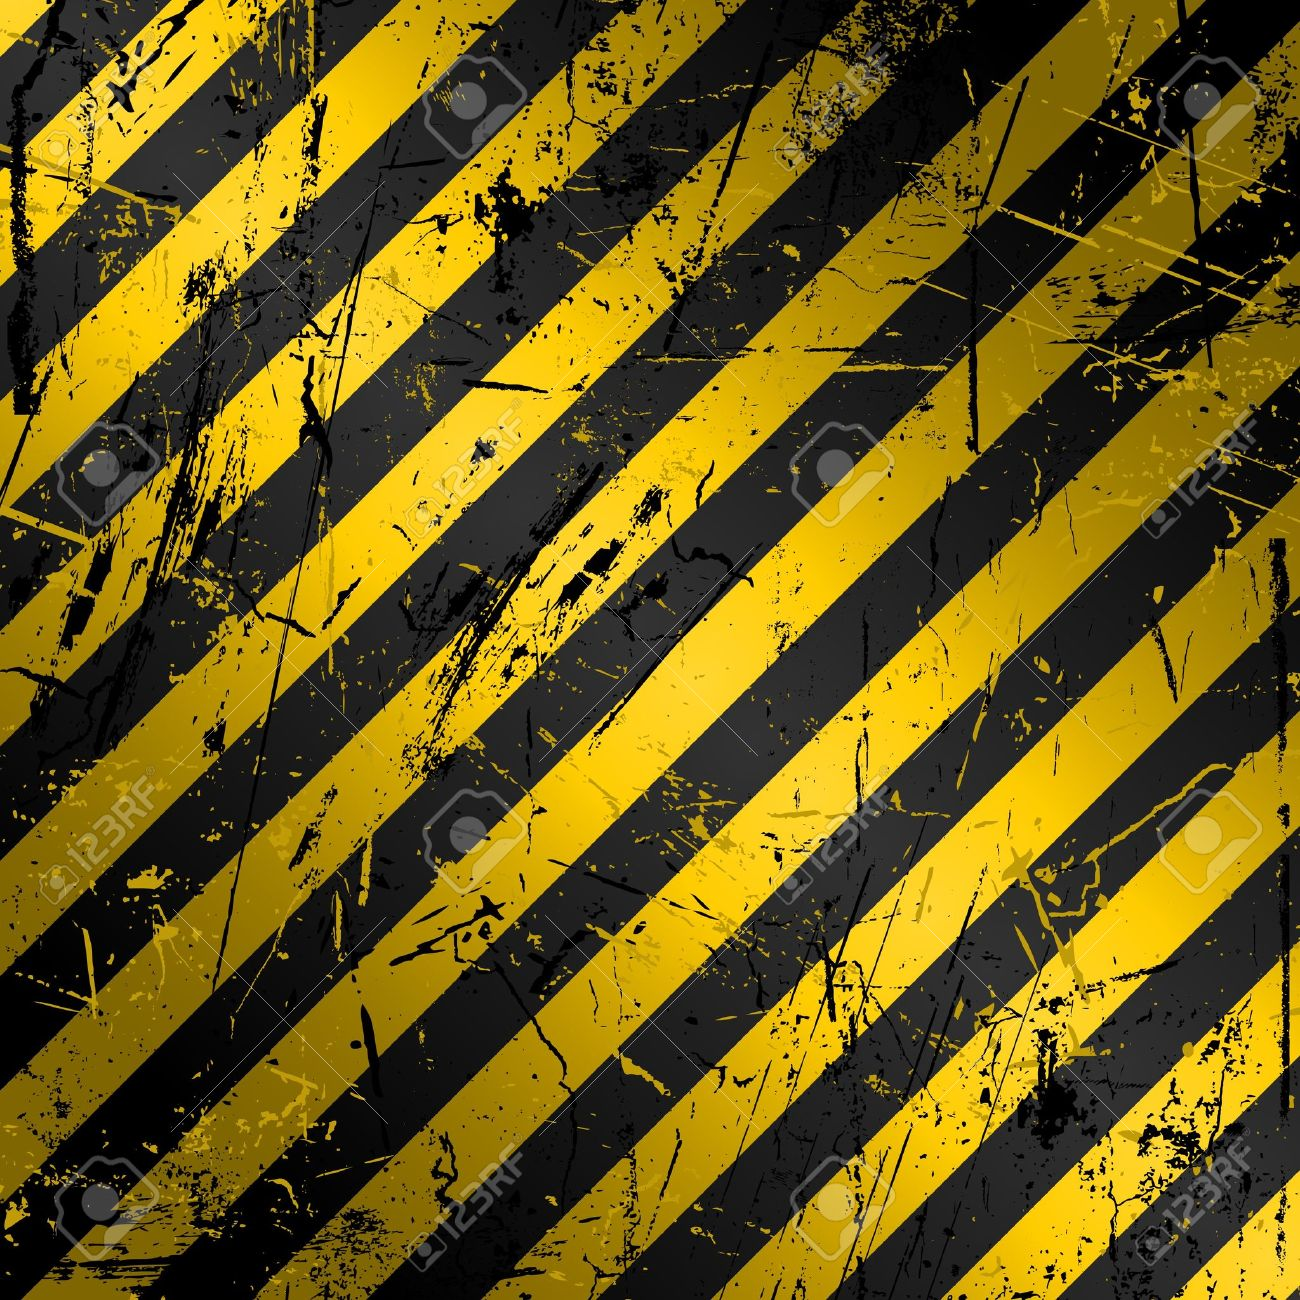 Border frame with black and yellow stripe on white background - Stripes Background Textured Grunge Construction Background In Yellow And Black